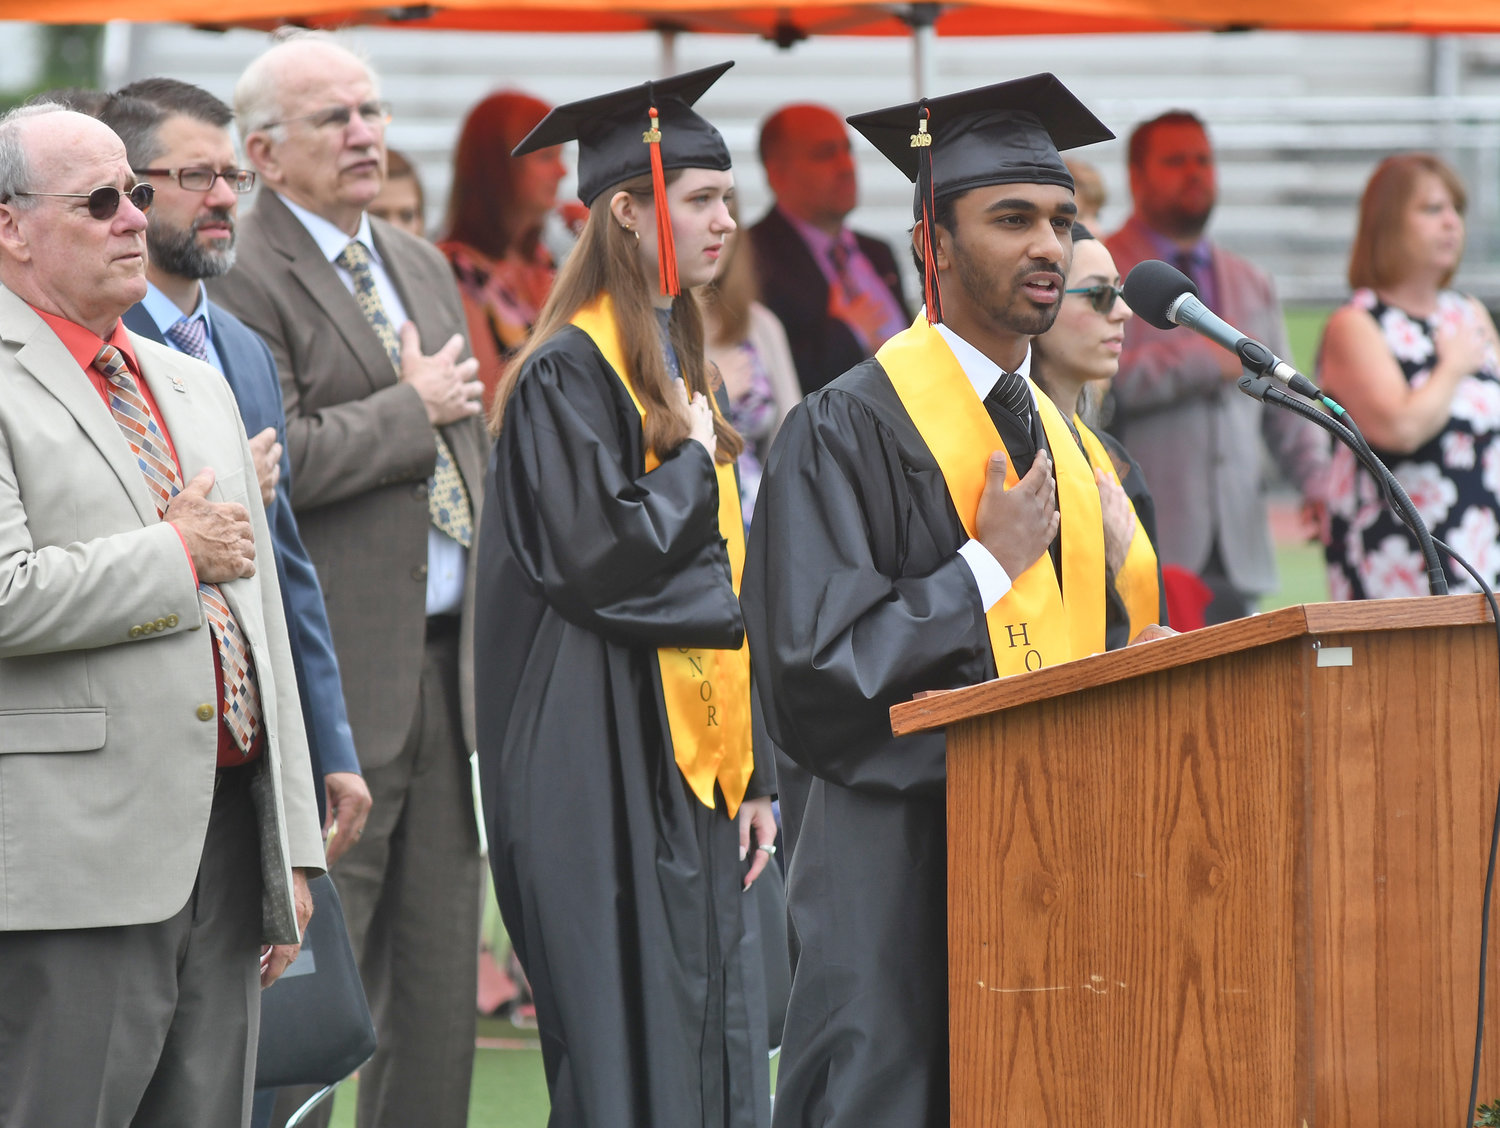 LEADING THE PLEDGE — Rome Free Academy student association President John George, at right, leads the Pledge of Allegiance during RFA's 150th commencement Saturday.